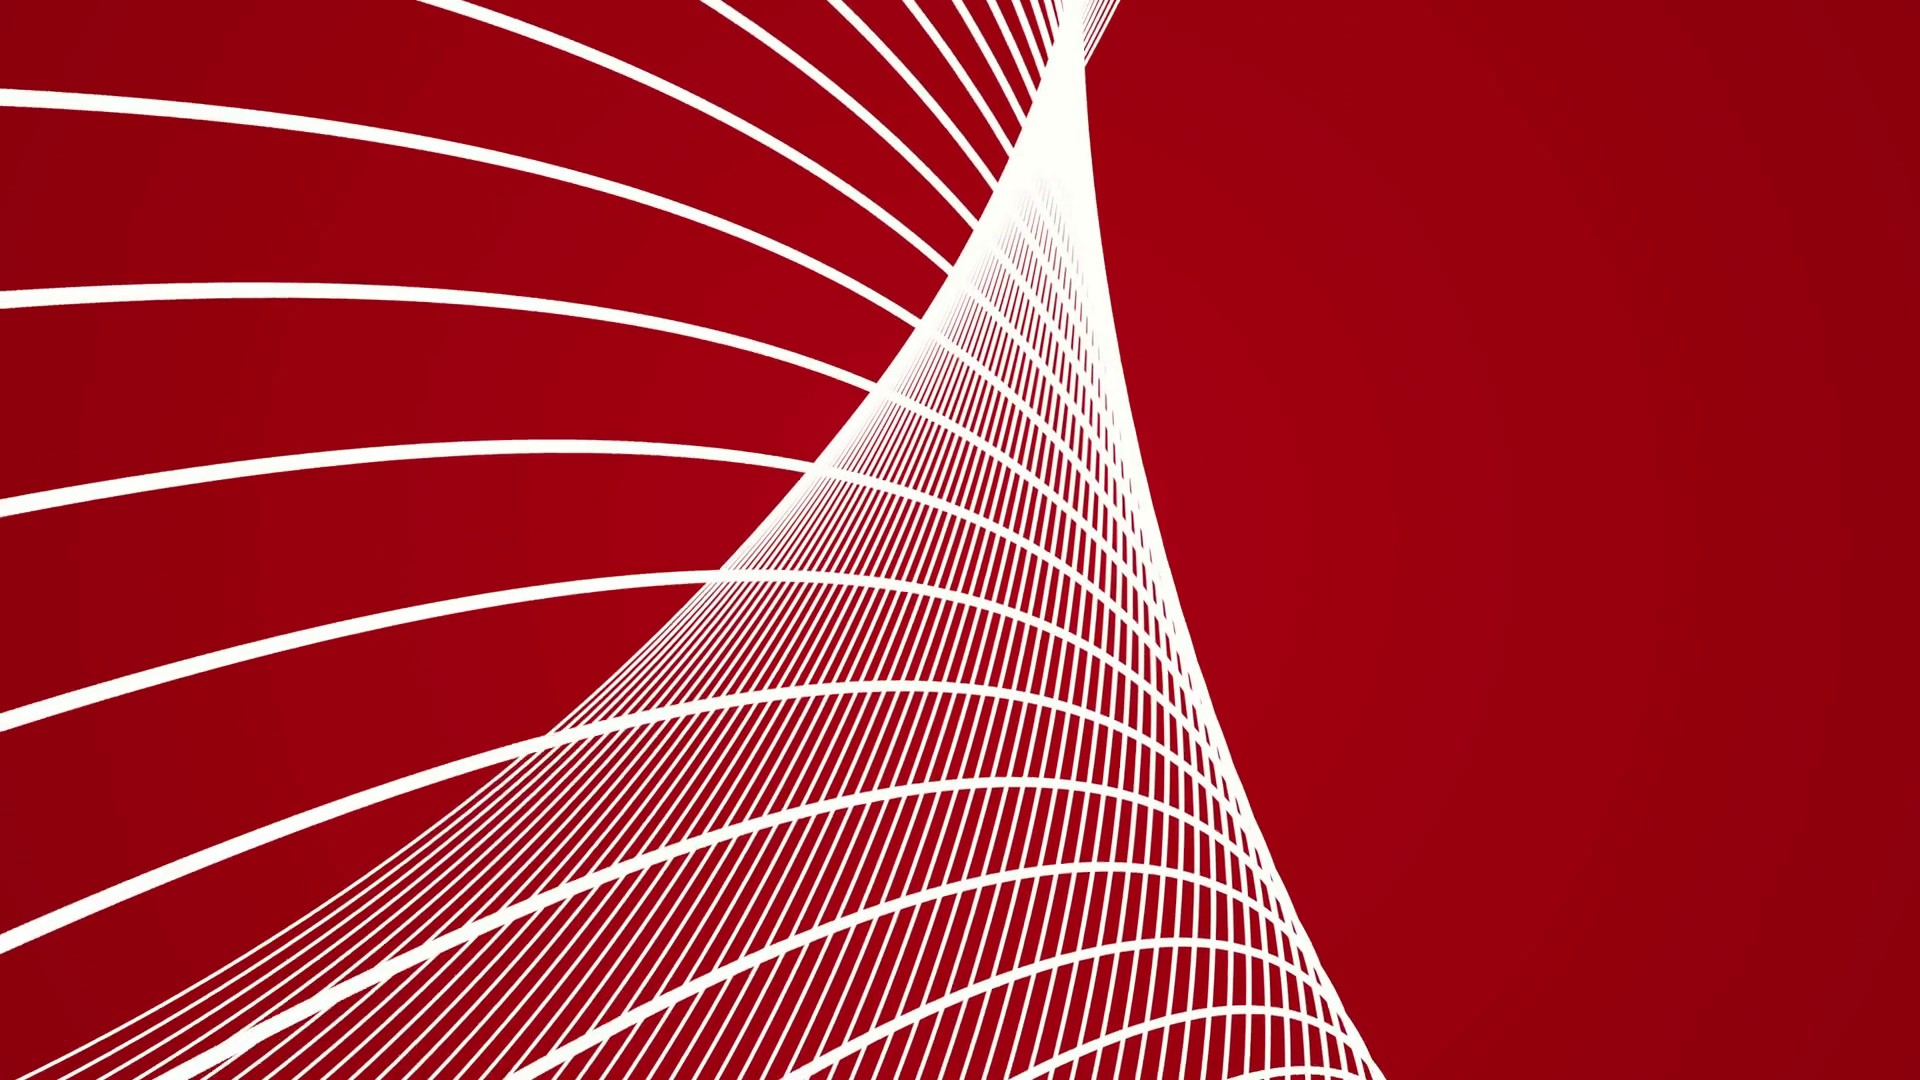 Red and White background  Download free beautiful High Resolution backgrounds for desktop